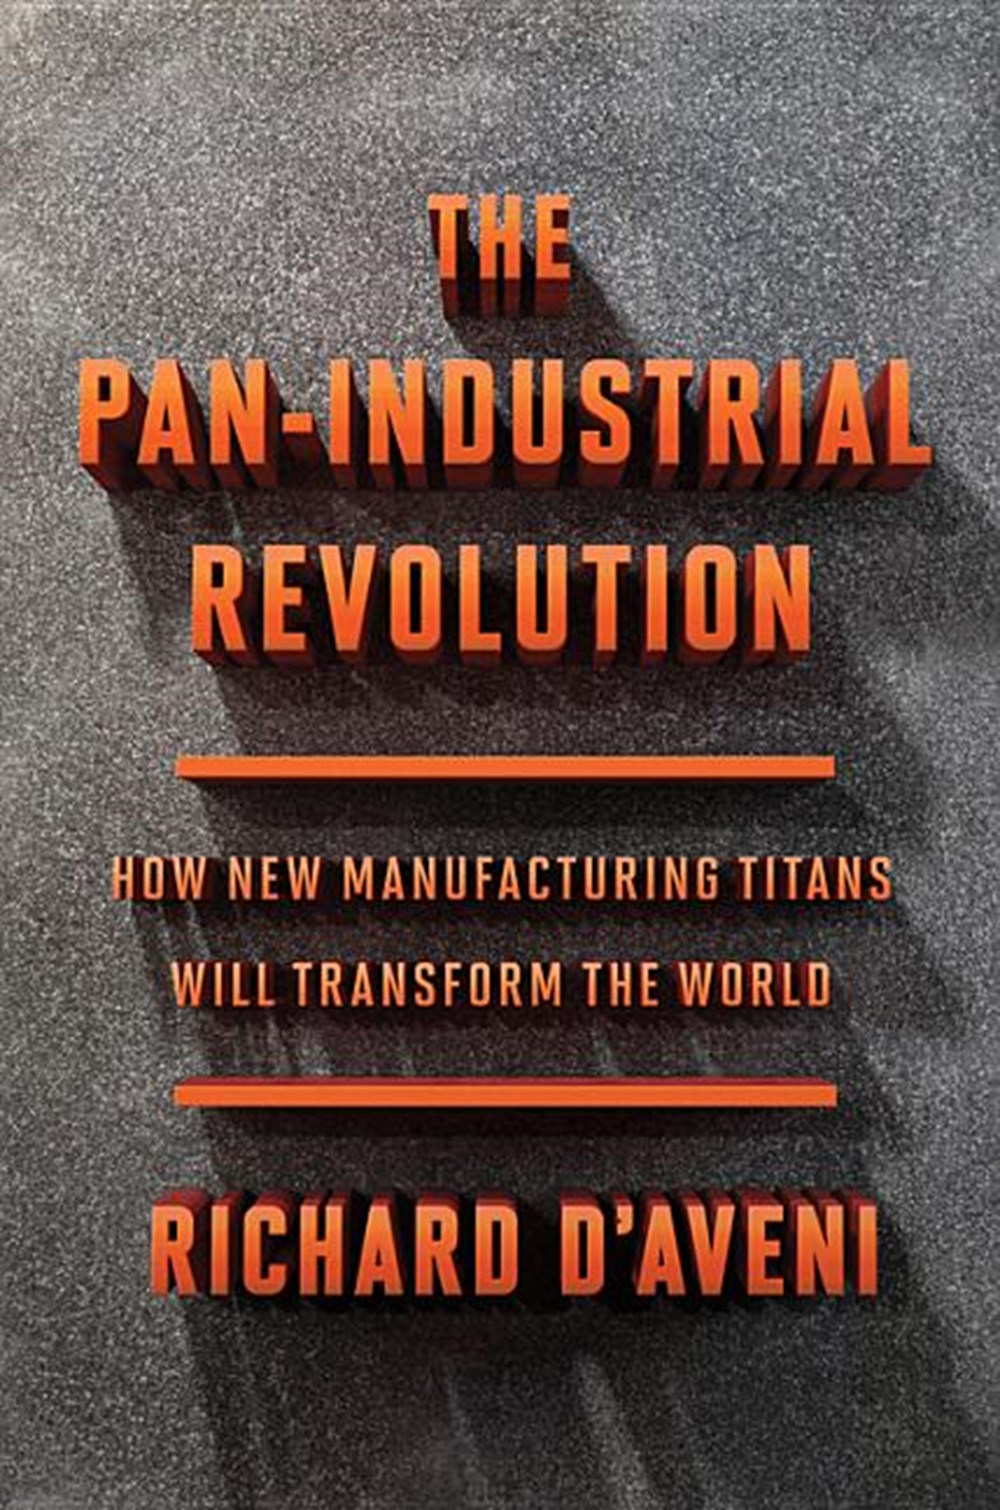 Pan-Industrial Revolution How New Manufacturing Titans Will Transform the World